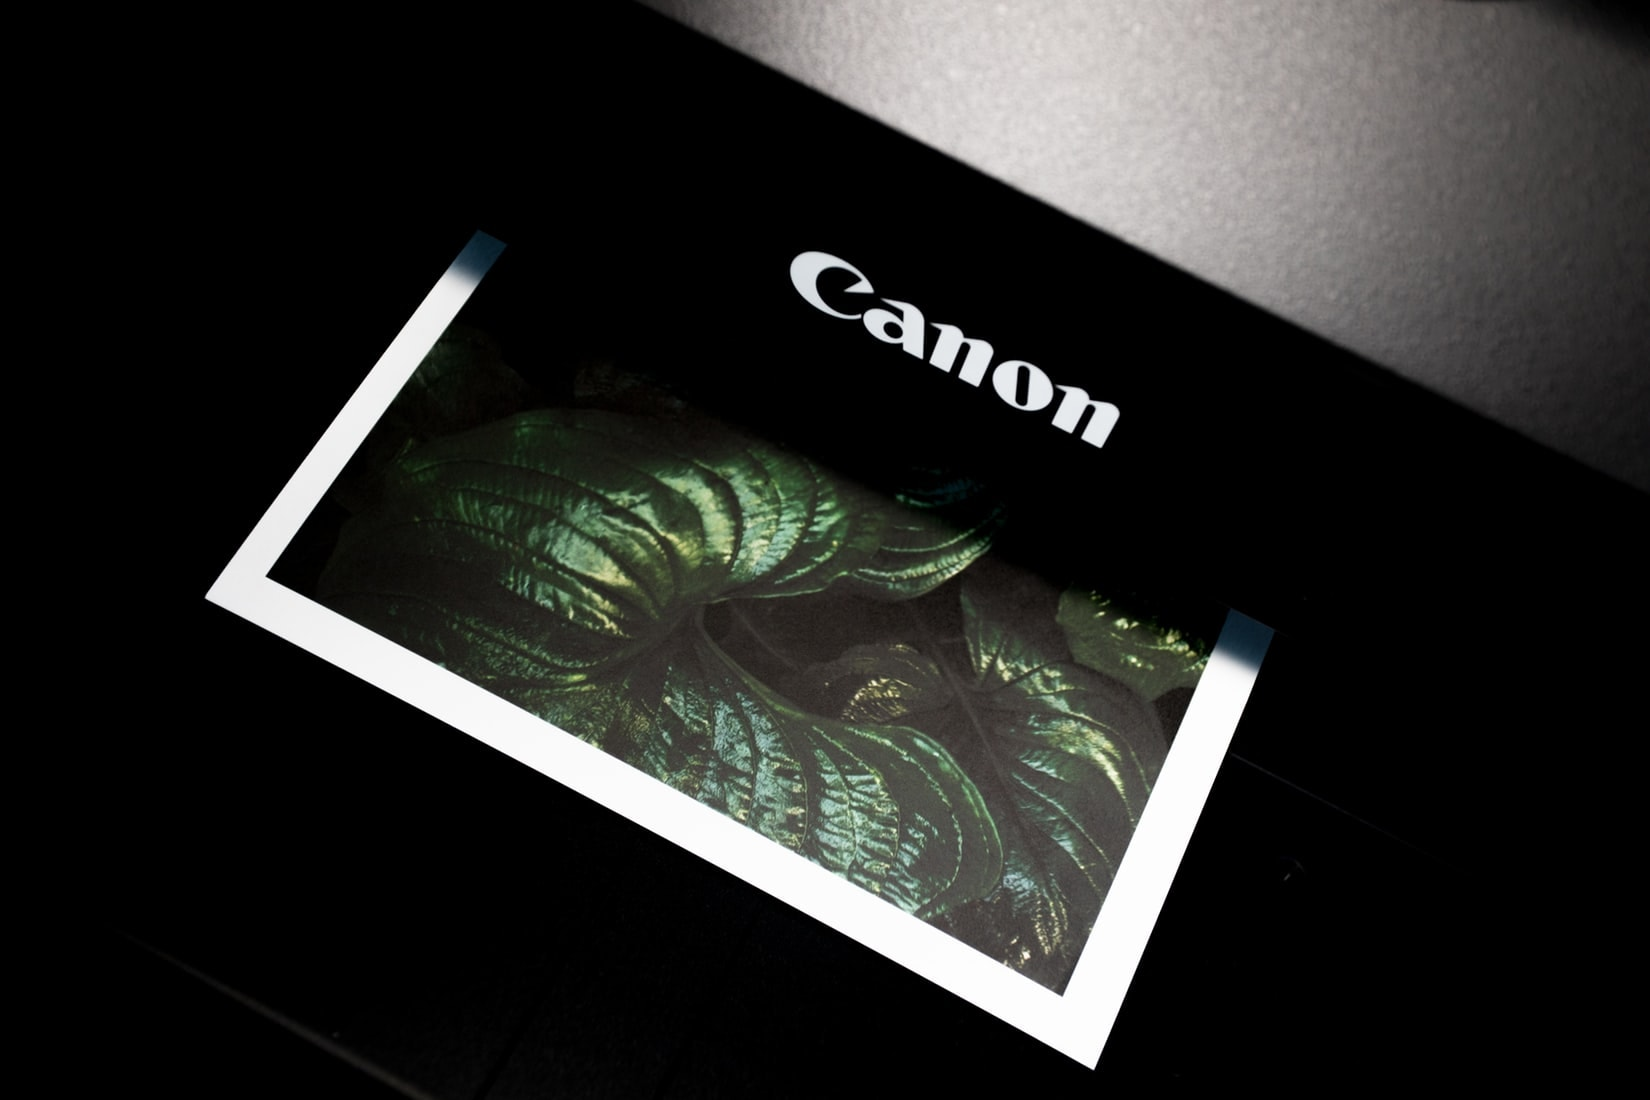 Canon printer met foto